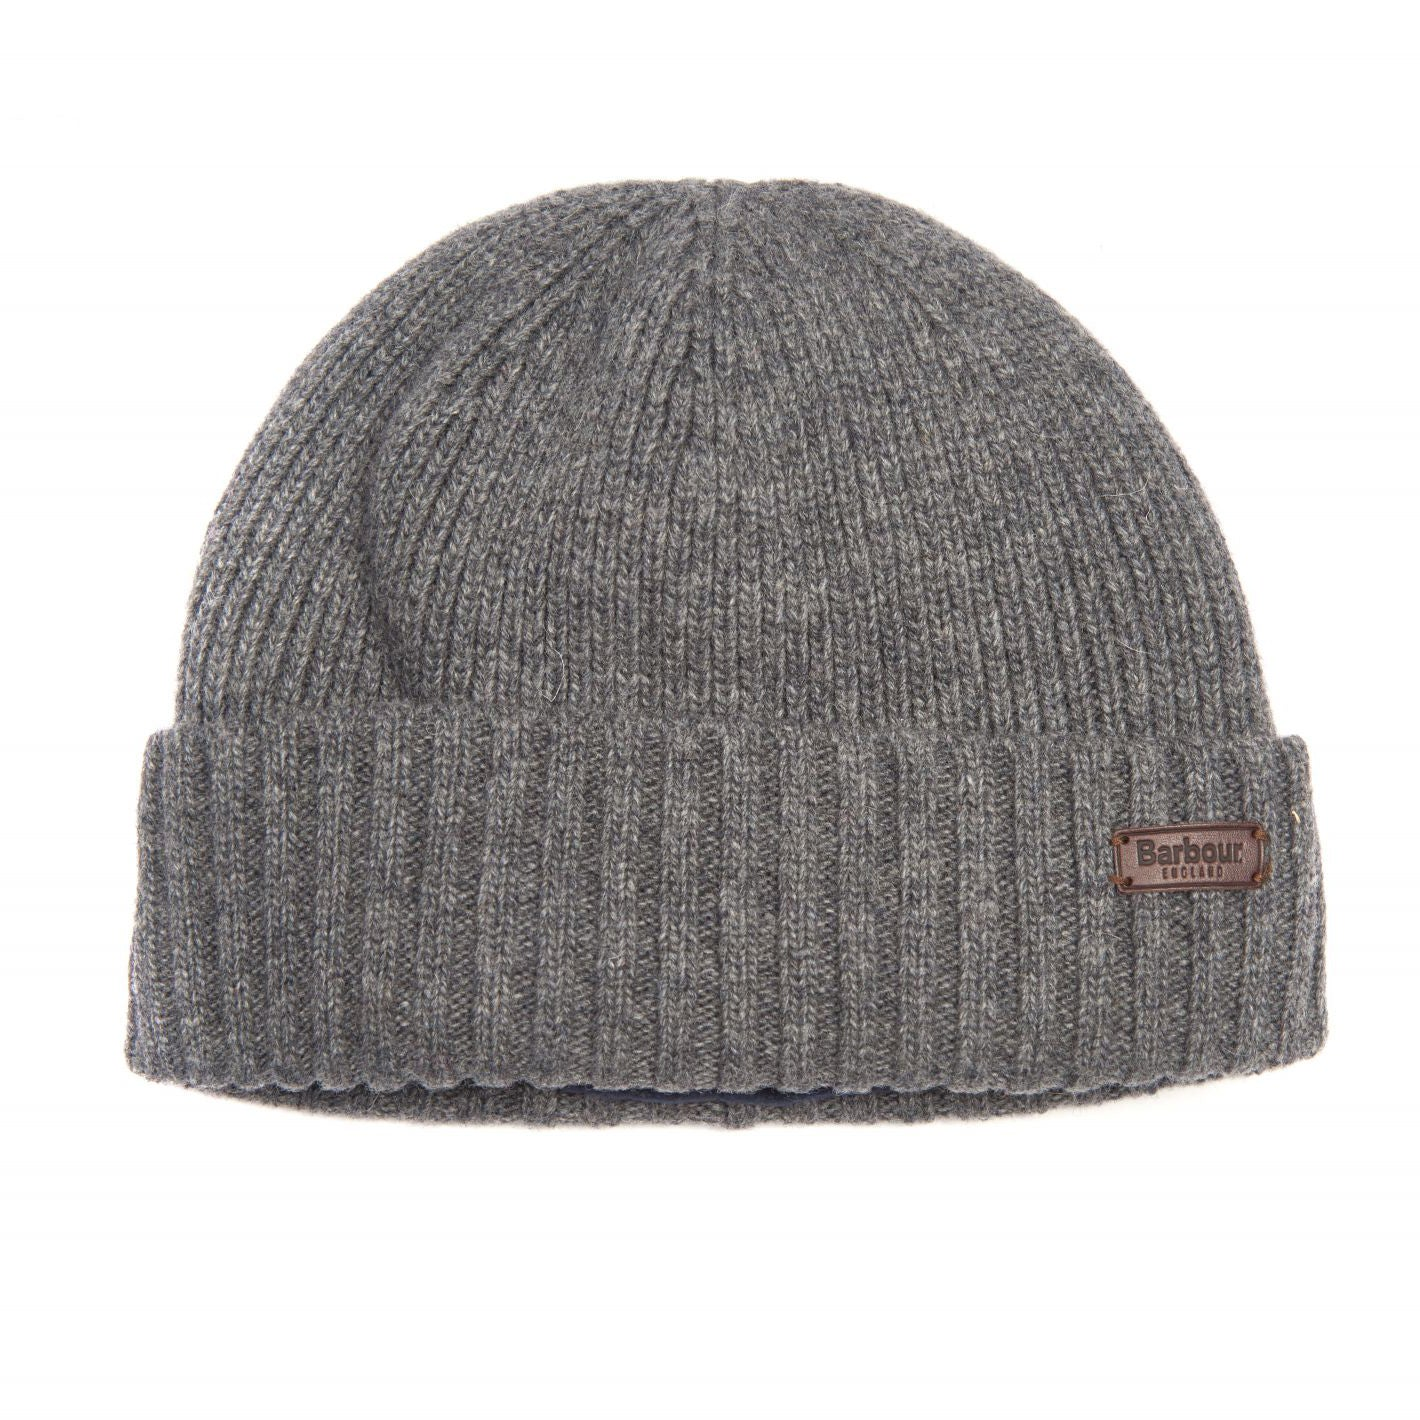 Barbour Carlton Beanie Grey